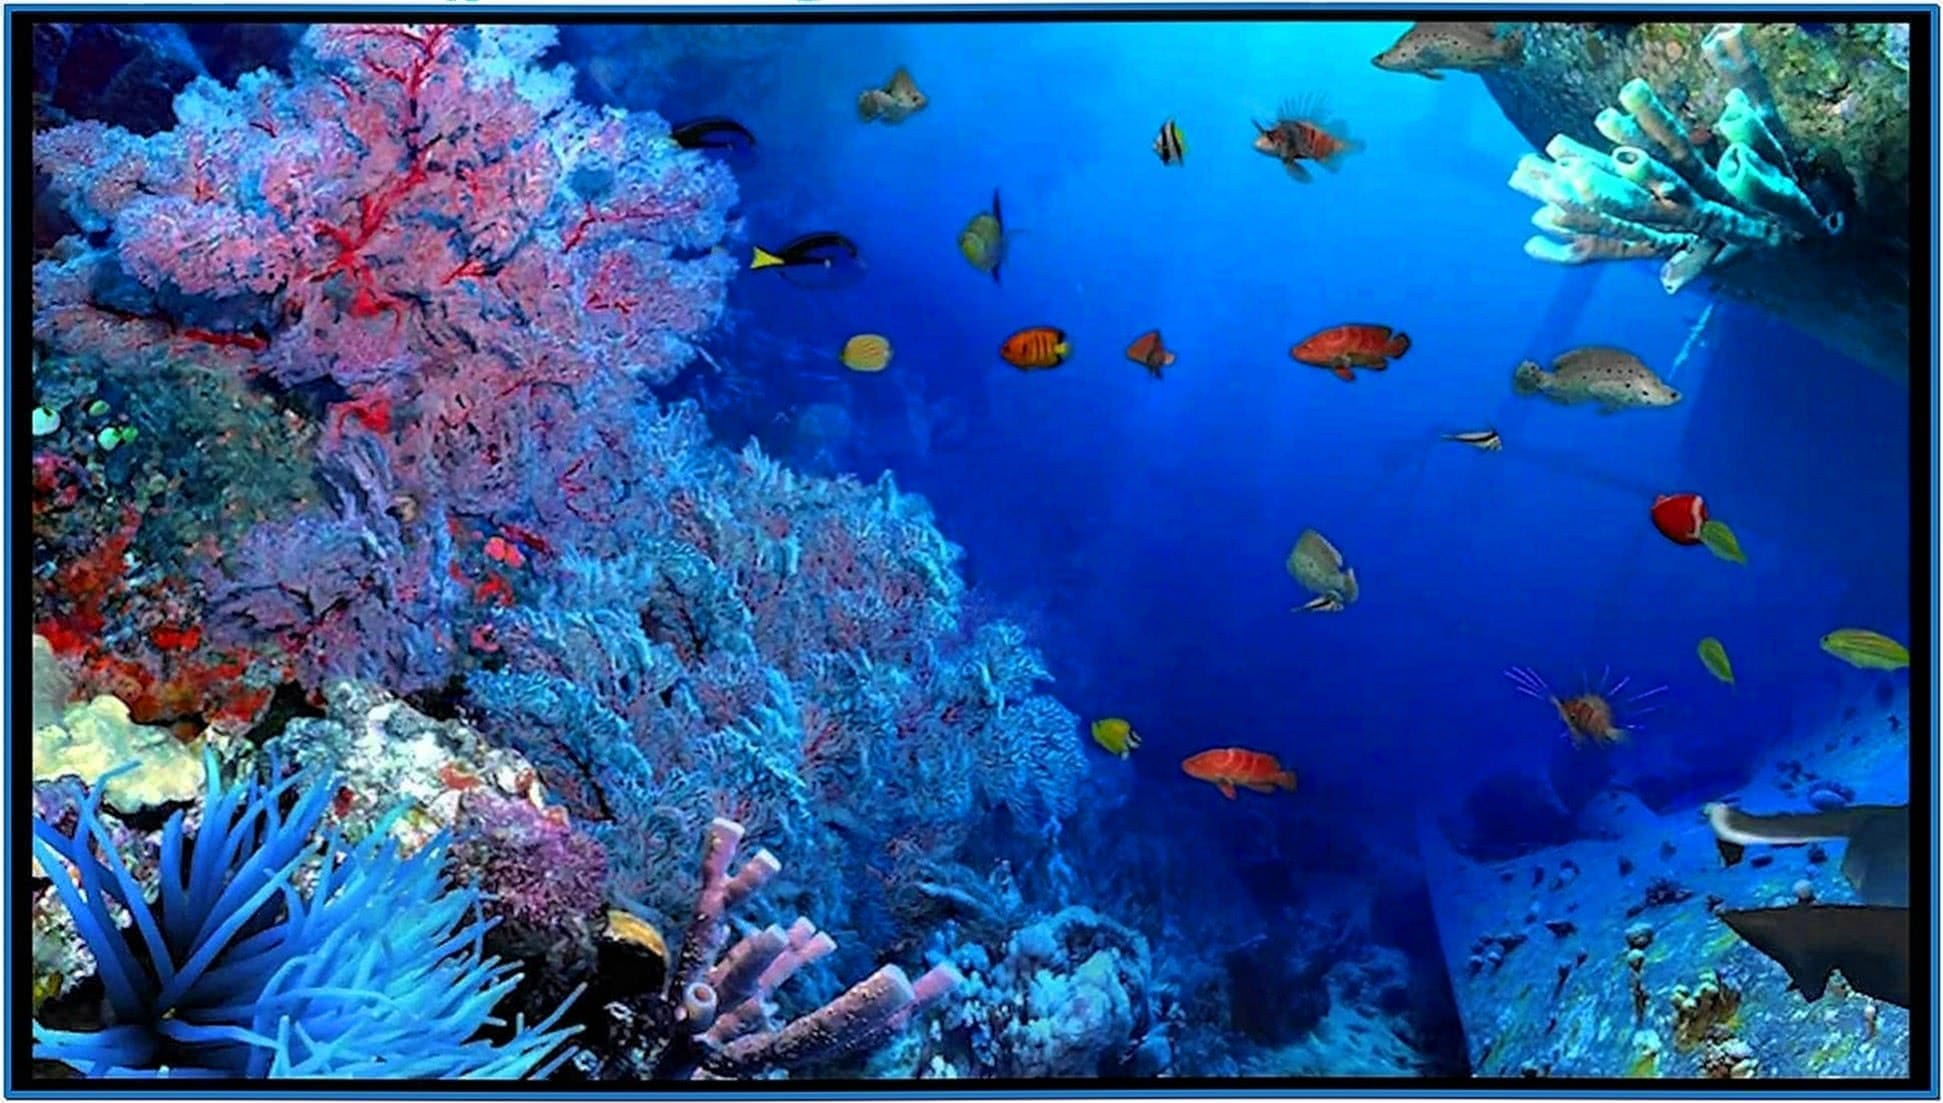 Aquareal 3D Sea Aquarium Screensaver